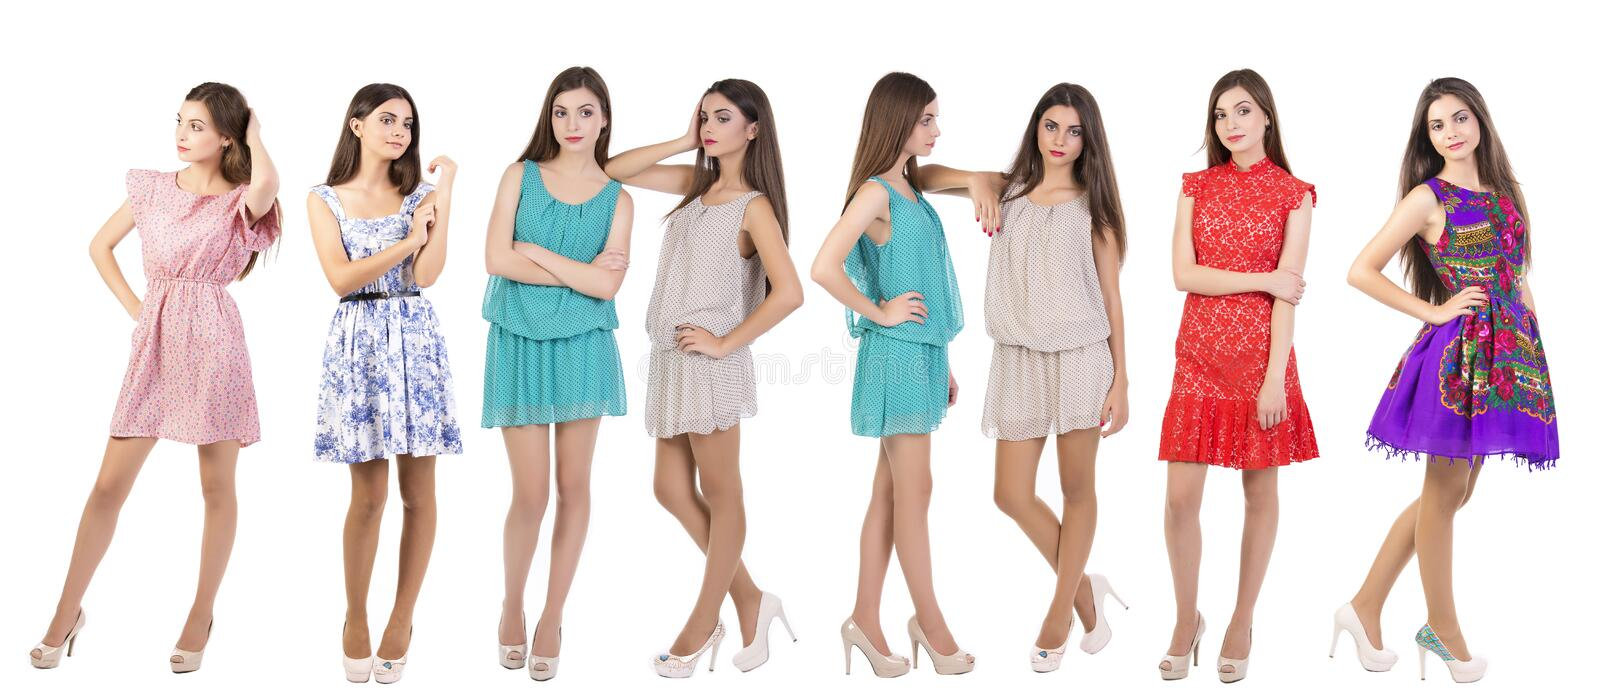 Collage Fashion models. Collage of fashion models wearing different outfits isolated on white